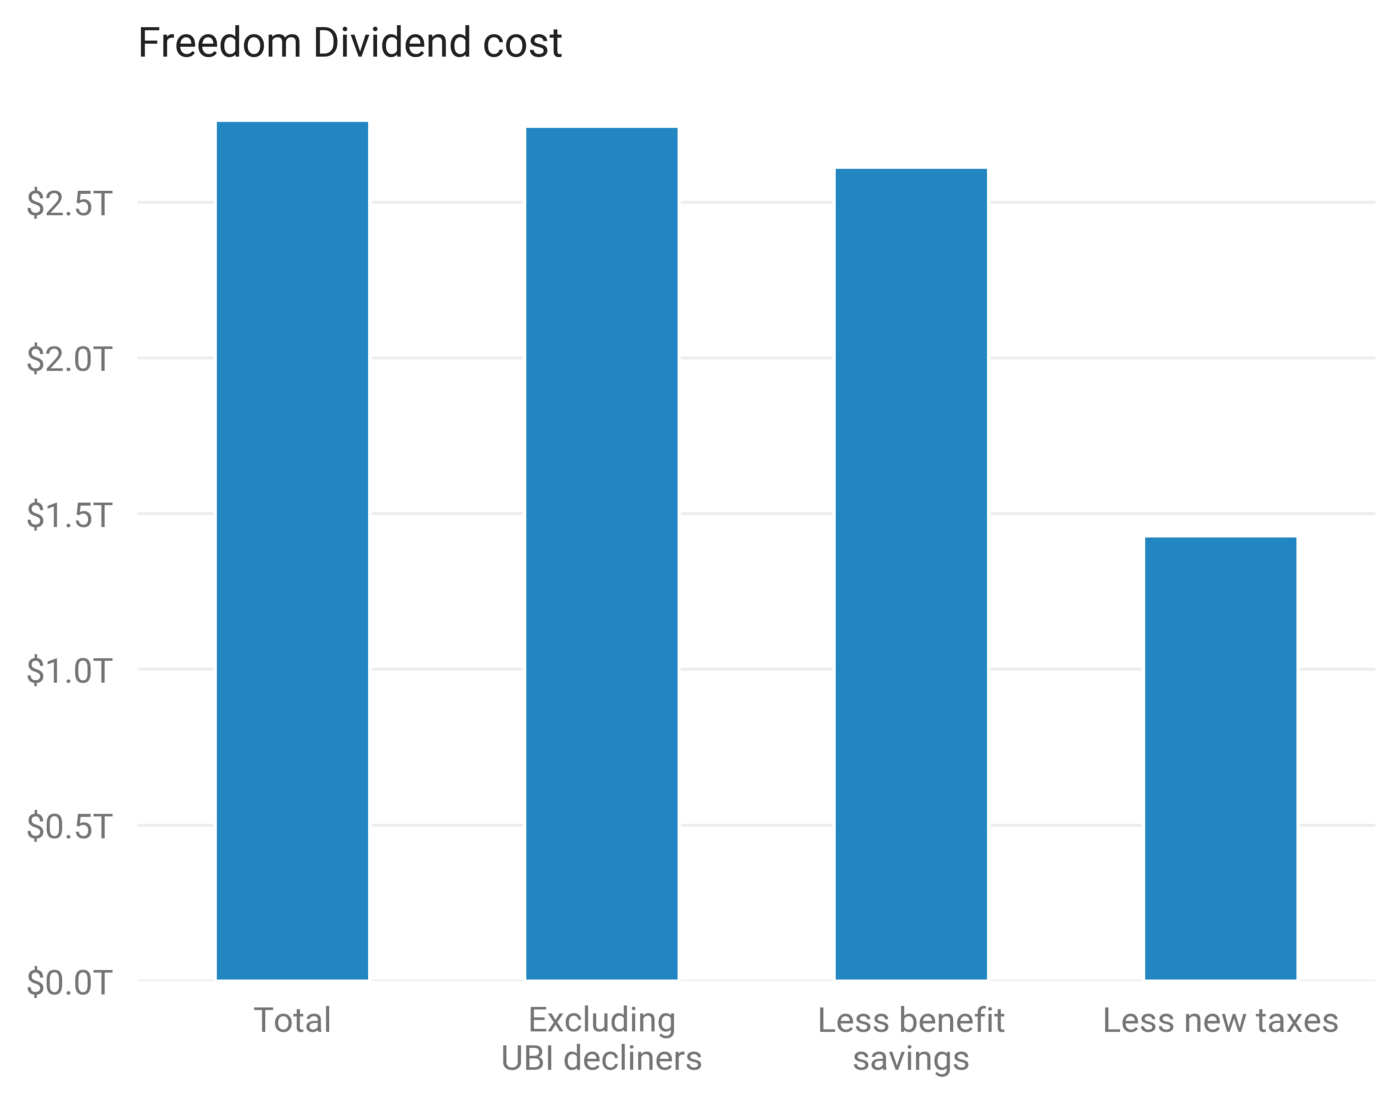 Distributional analysis of Andrew Yang's Freedom Dividend